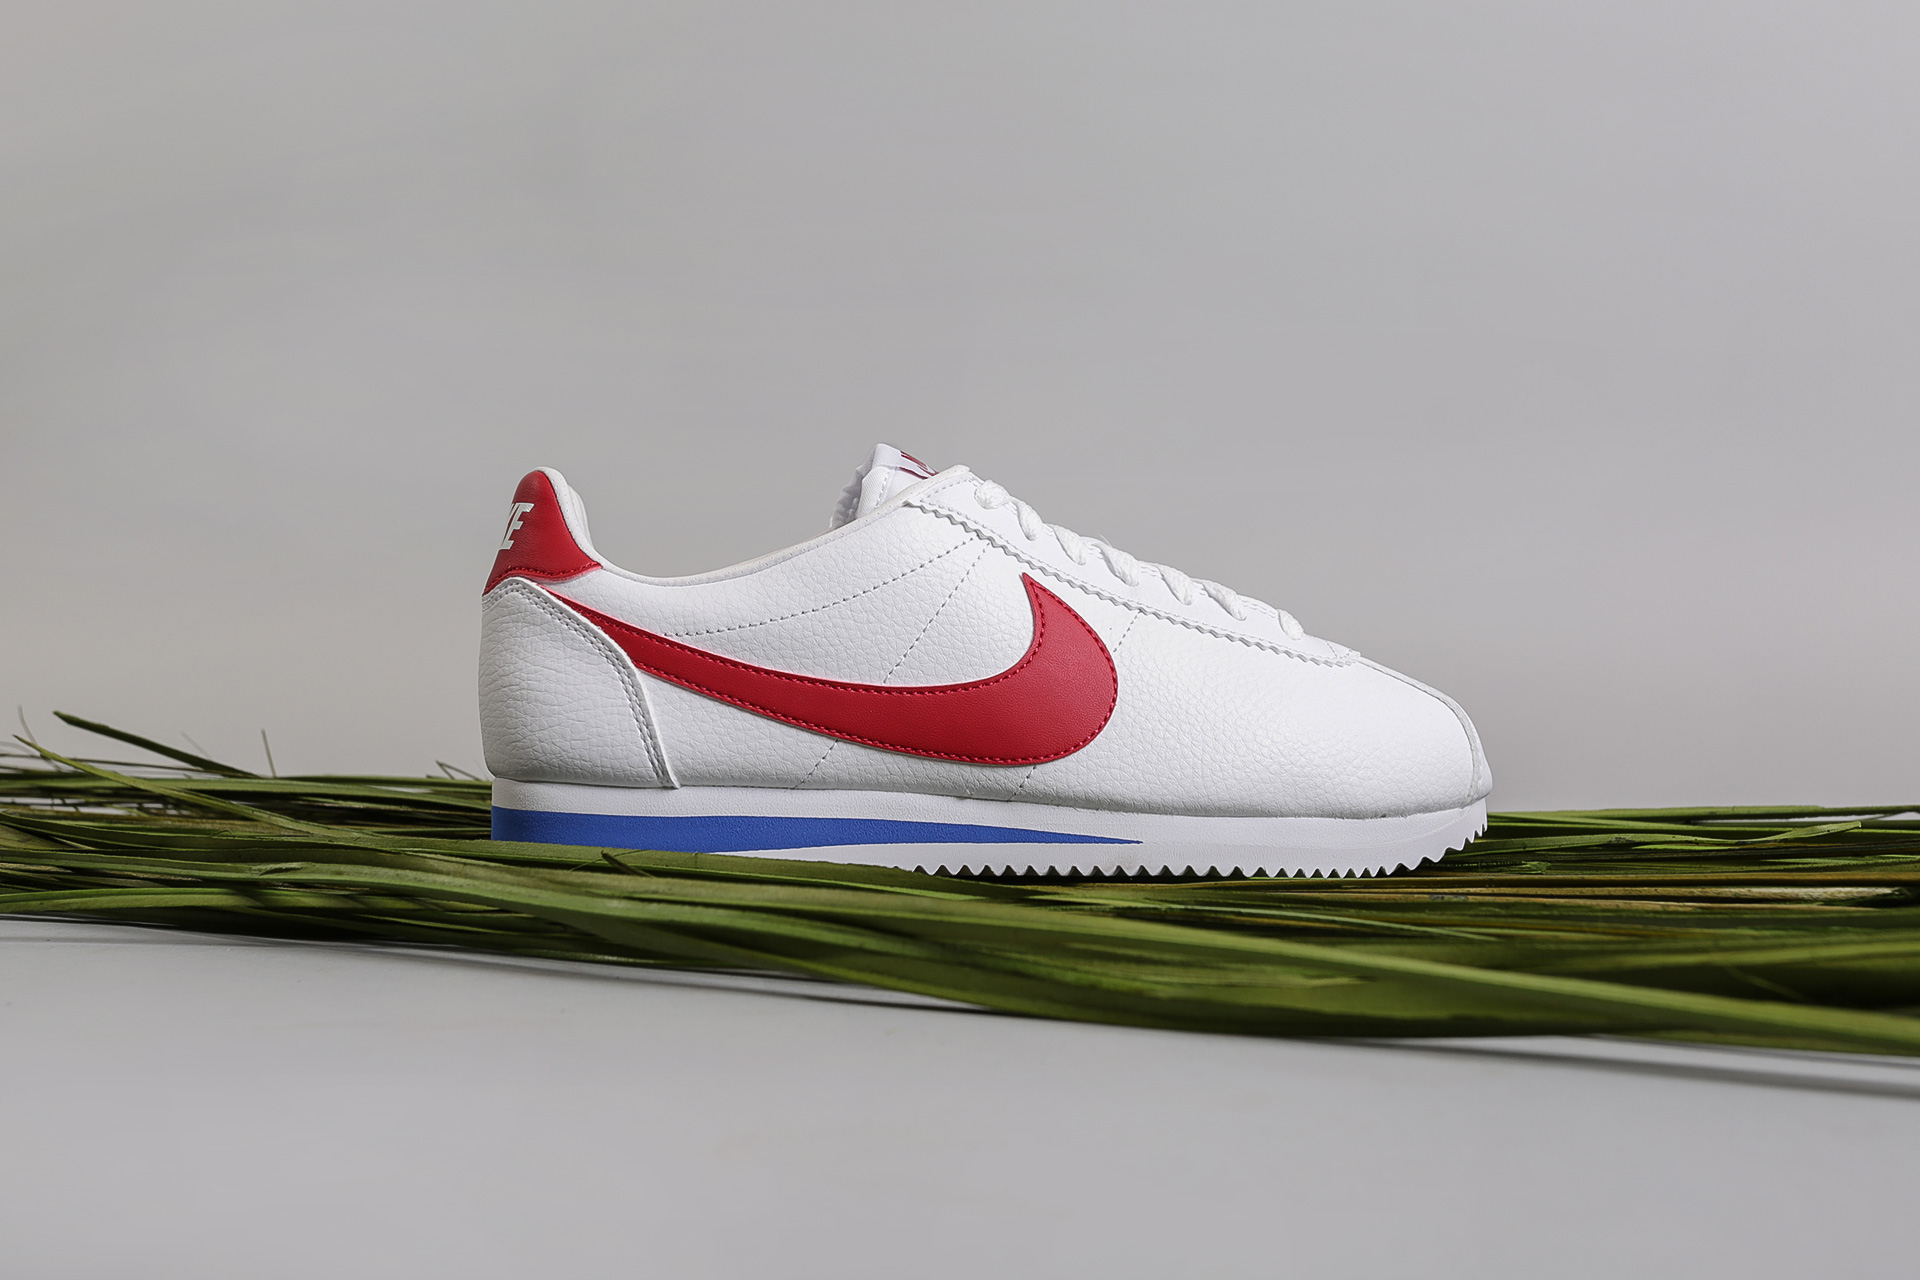 save off 8244f 63763 Мужские Кроссовки Cortez Leather Nike (749571-154)